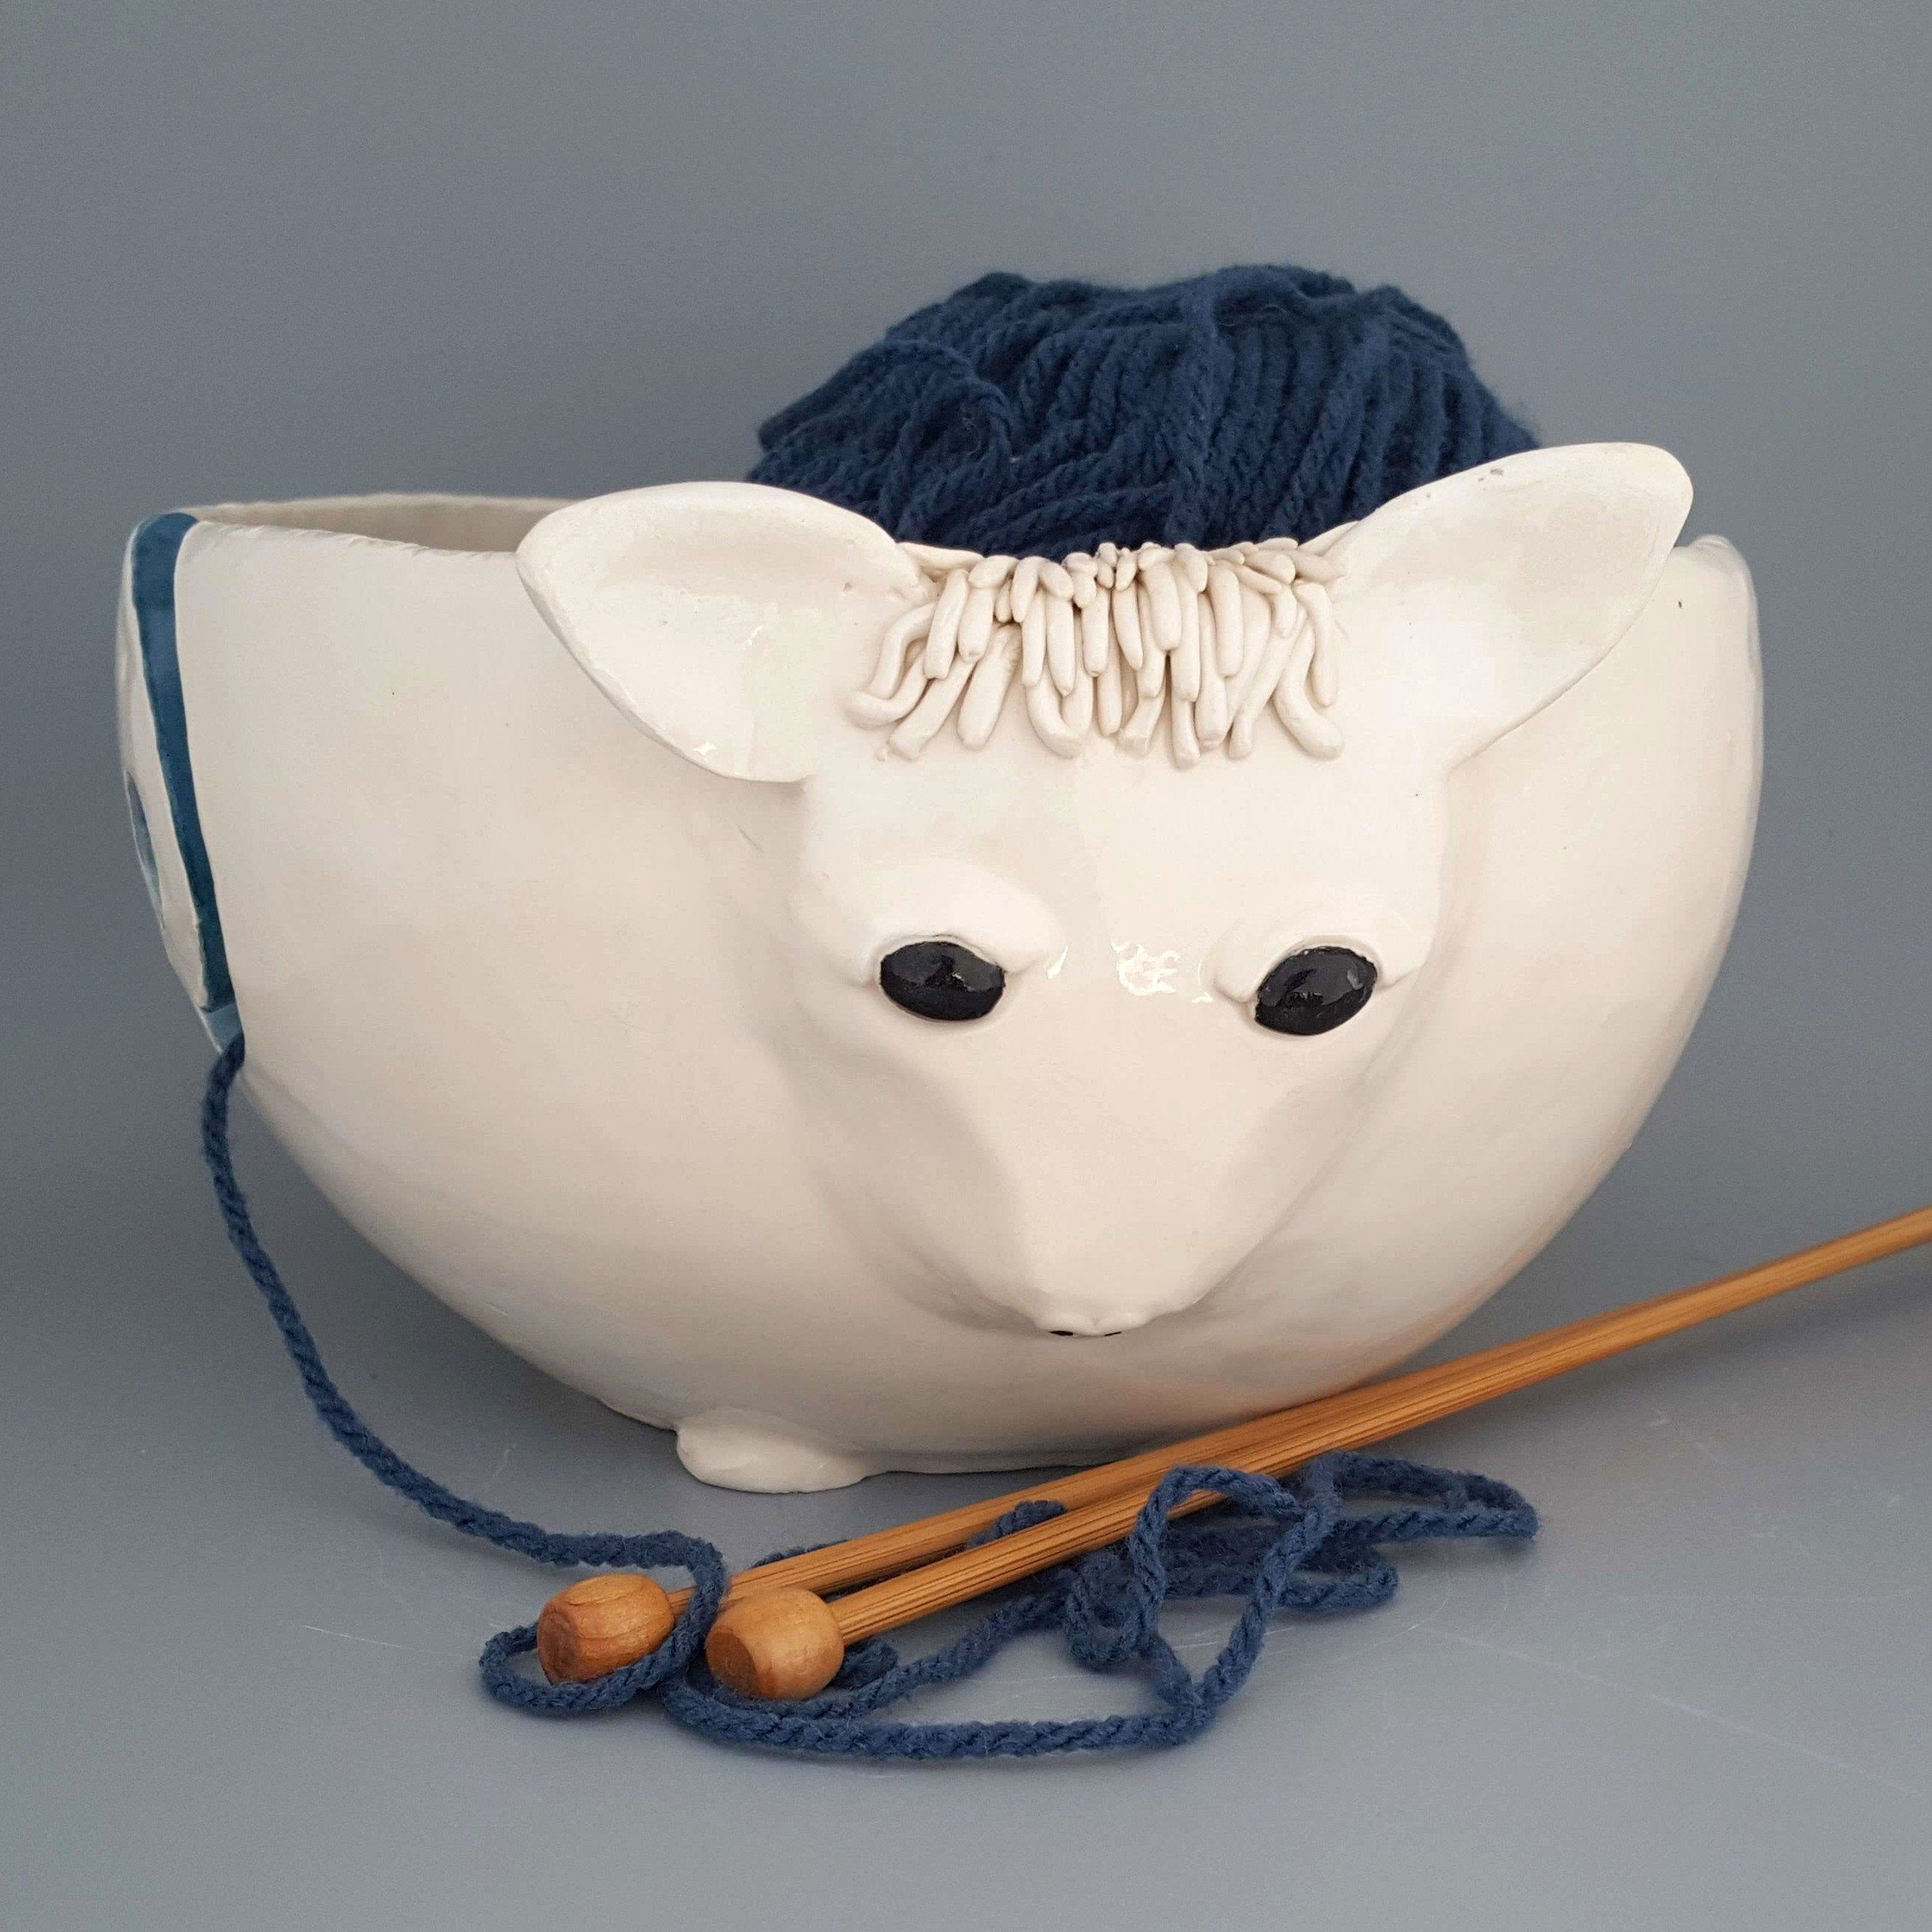 Sheep shaped knitting bowl, crochet bowl, yarn bowl #crochetbowl